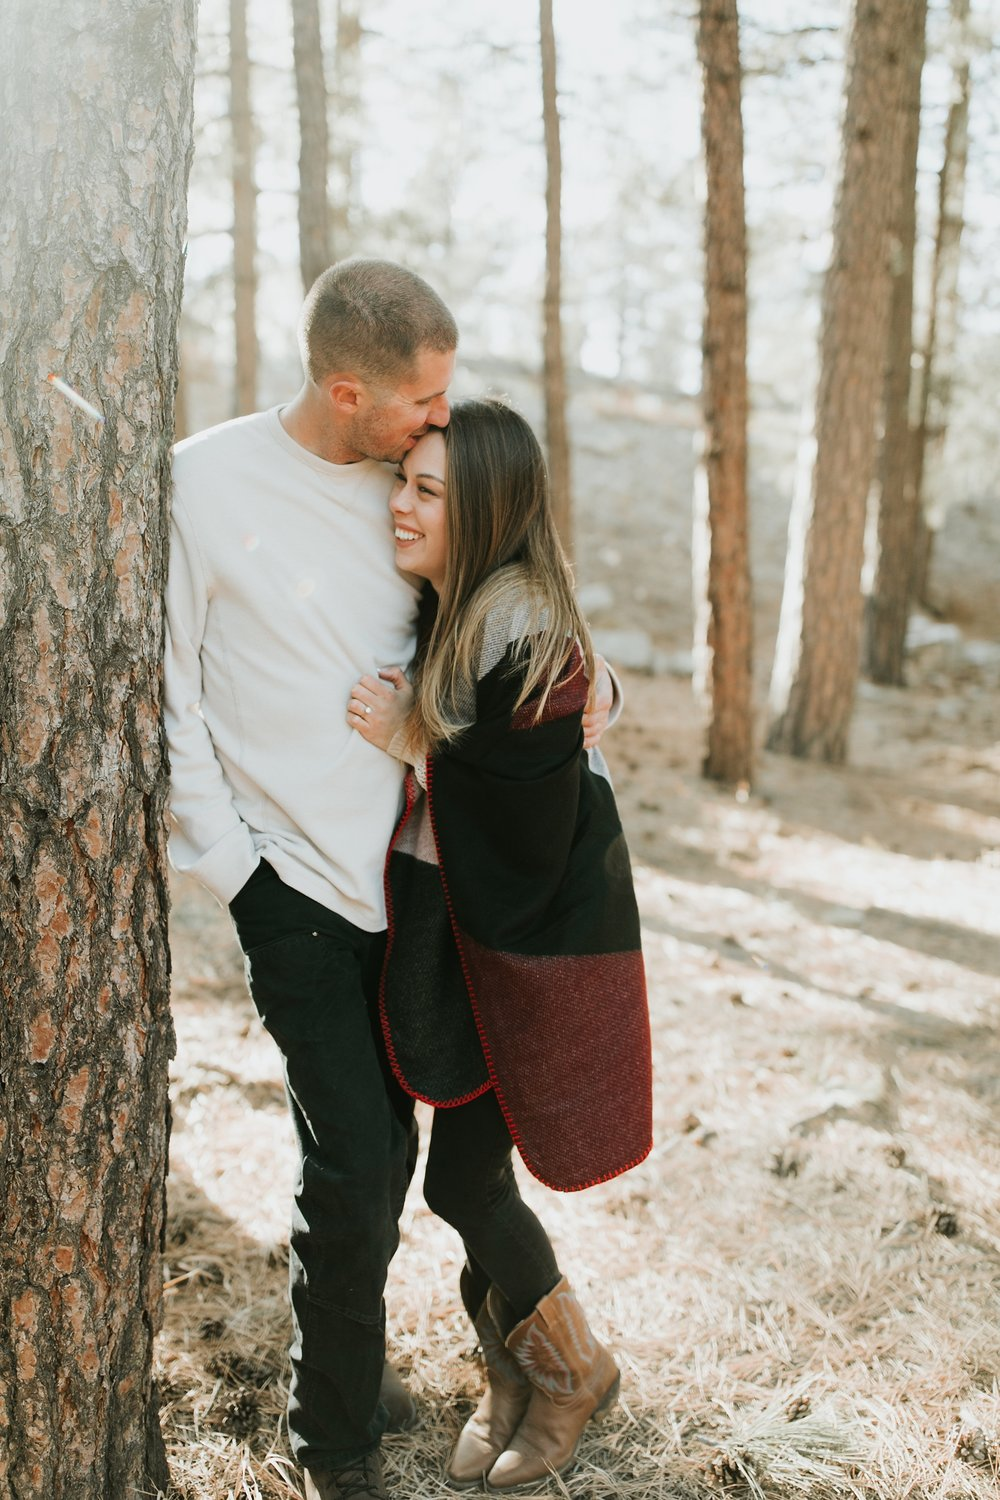 Alicia+lucia+photography+-+albuquerque+wedding+photographer+-+santa+fe+wedding+photography+-+new+mexico+wedding+photographer+-+albuquerque+winter+engagement+session_0033.jpg